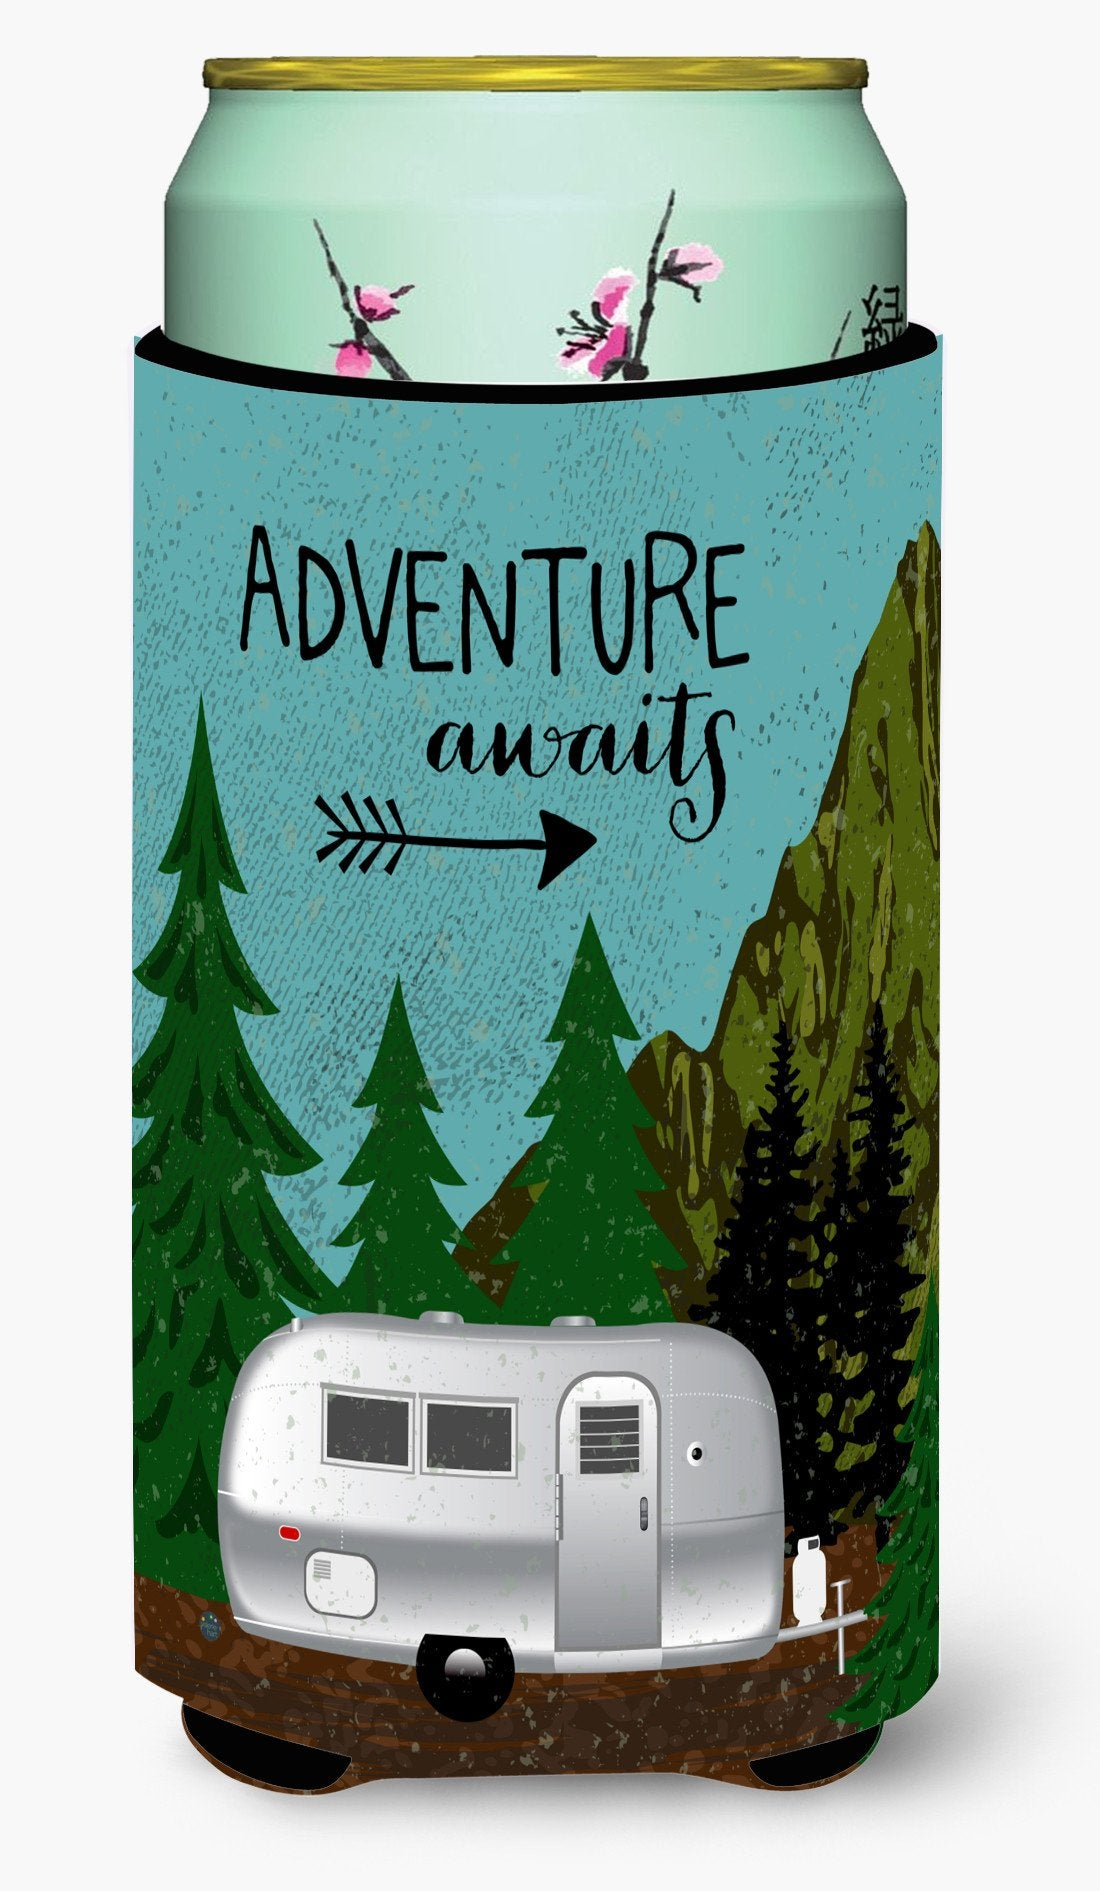 Airstream Camper Adventure Awaits Tall Boy Beverage Insulator Hugger VHA3022TBC by Caroline's Treasures